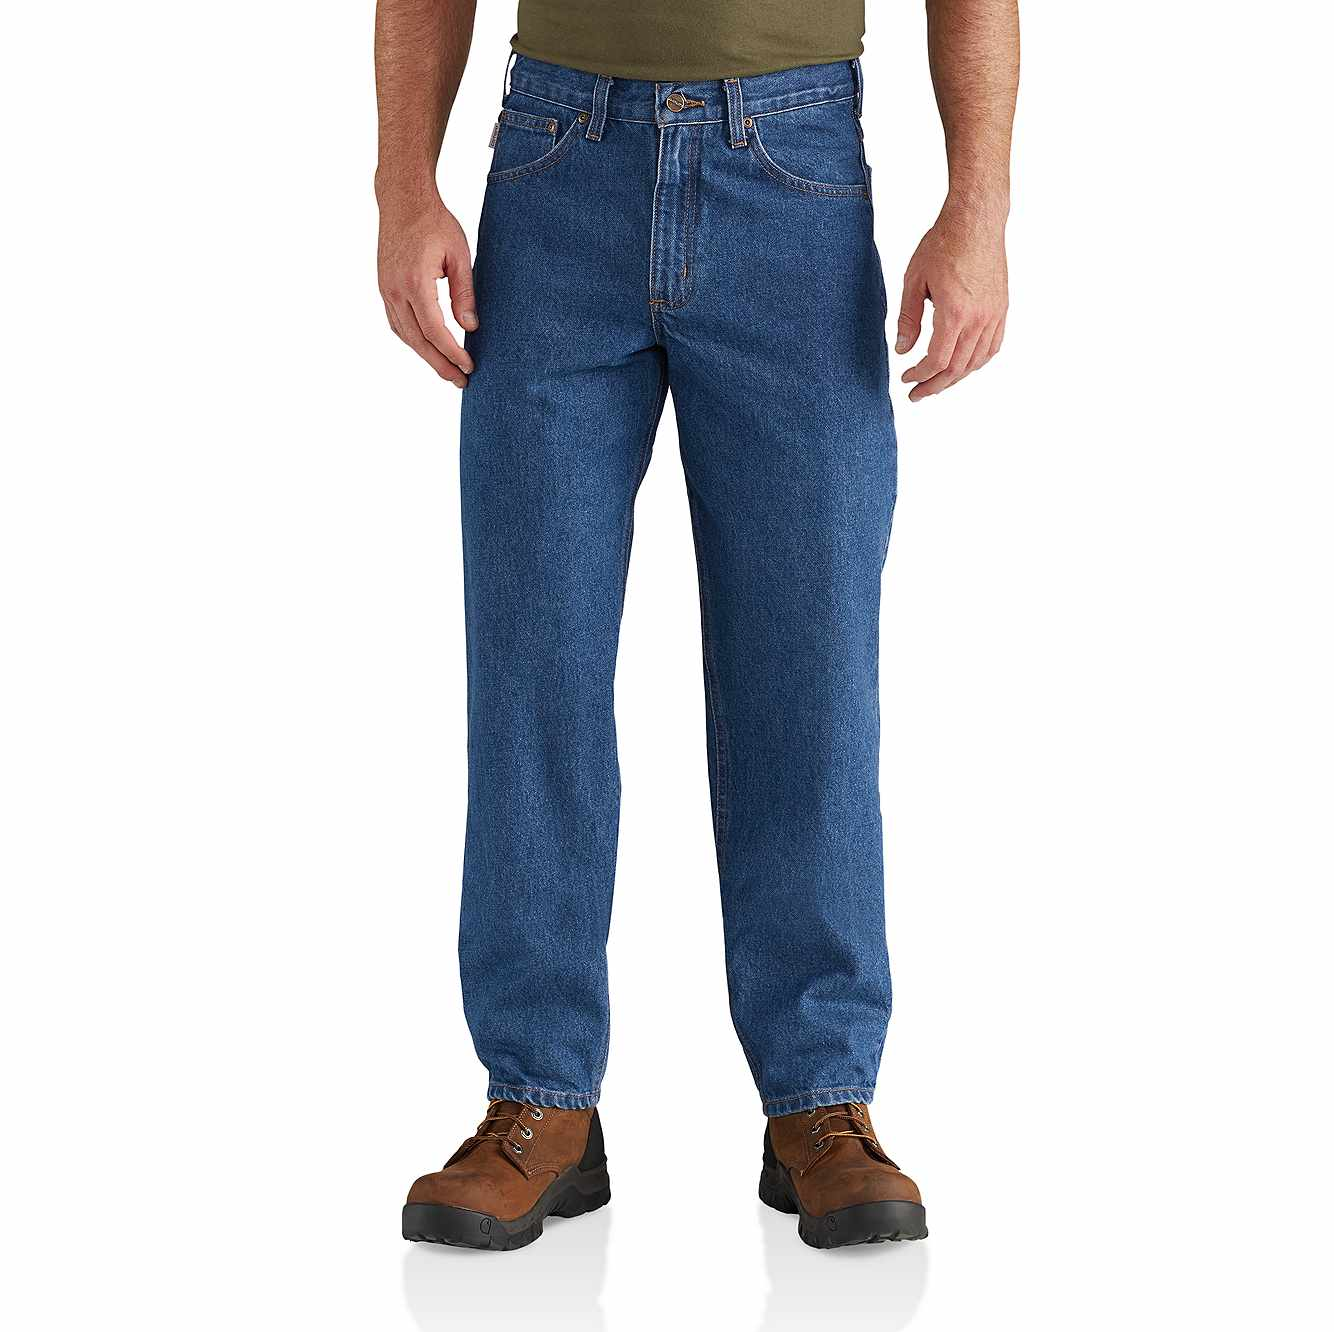 Picture of Relaxed Fit Tapered Leg Jean in Darkstone